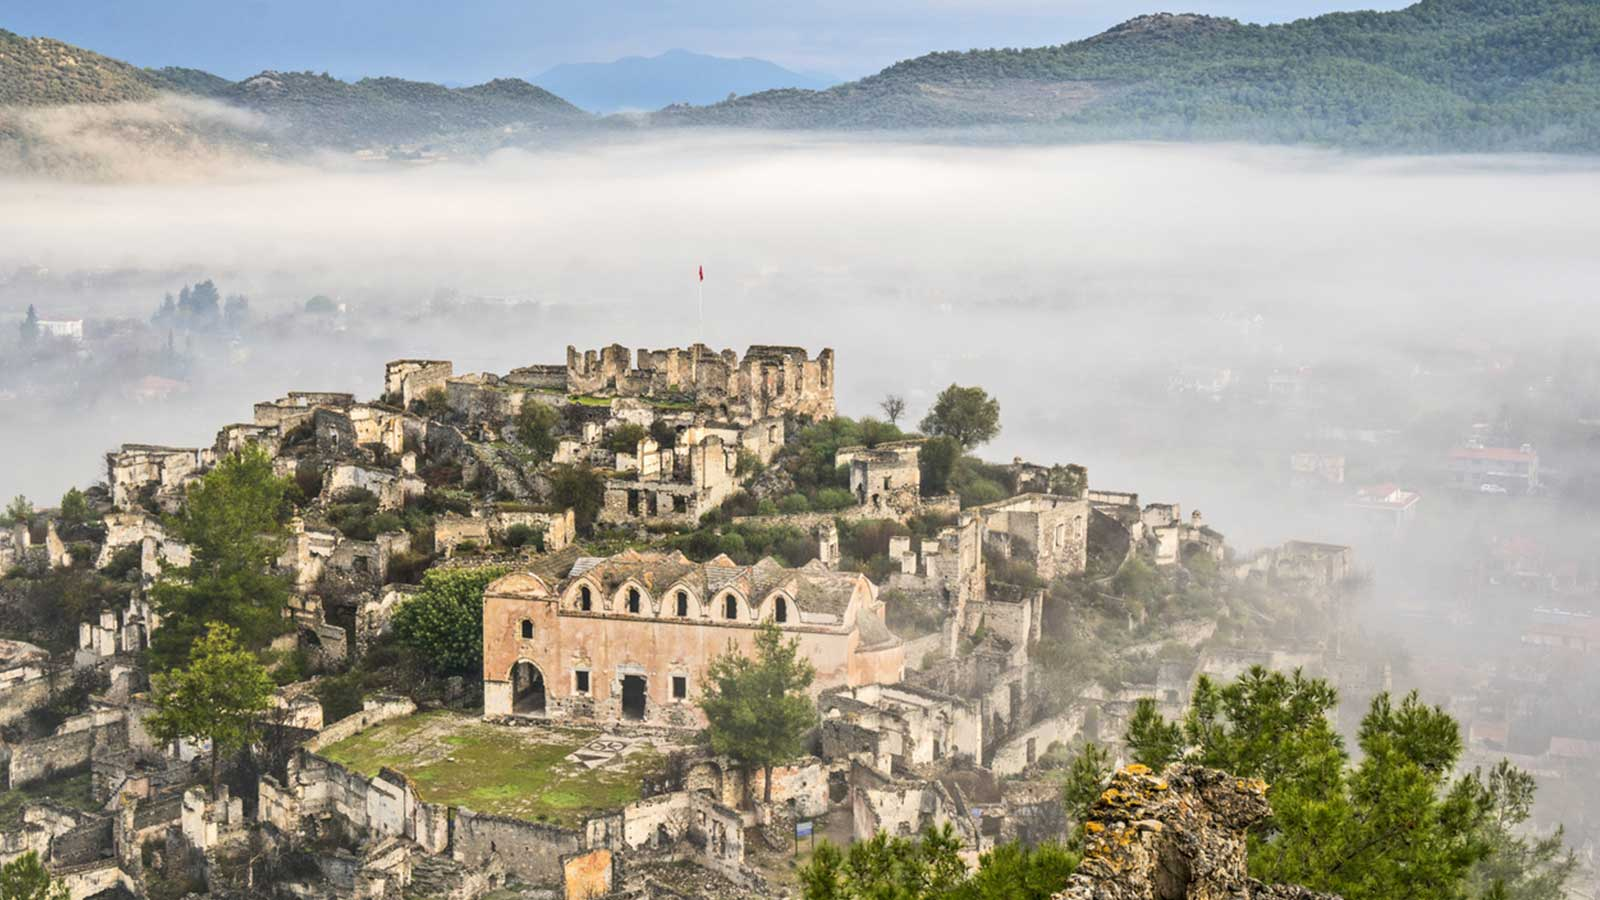 The Ghost Town of Kayakoy, Fethiye